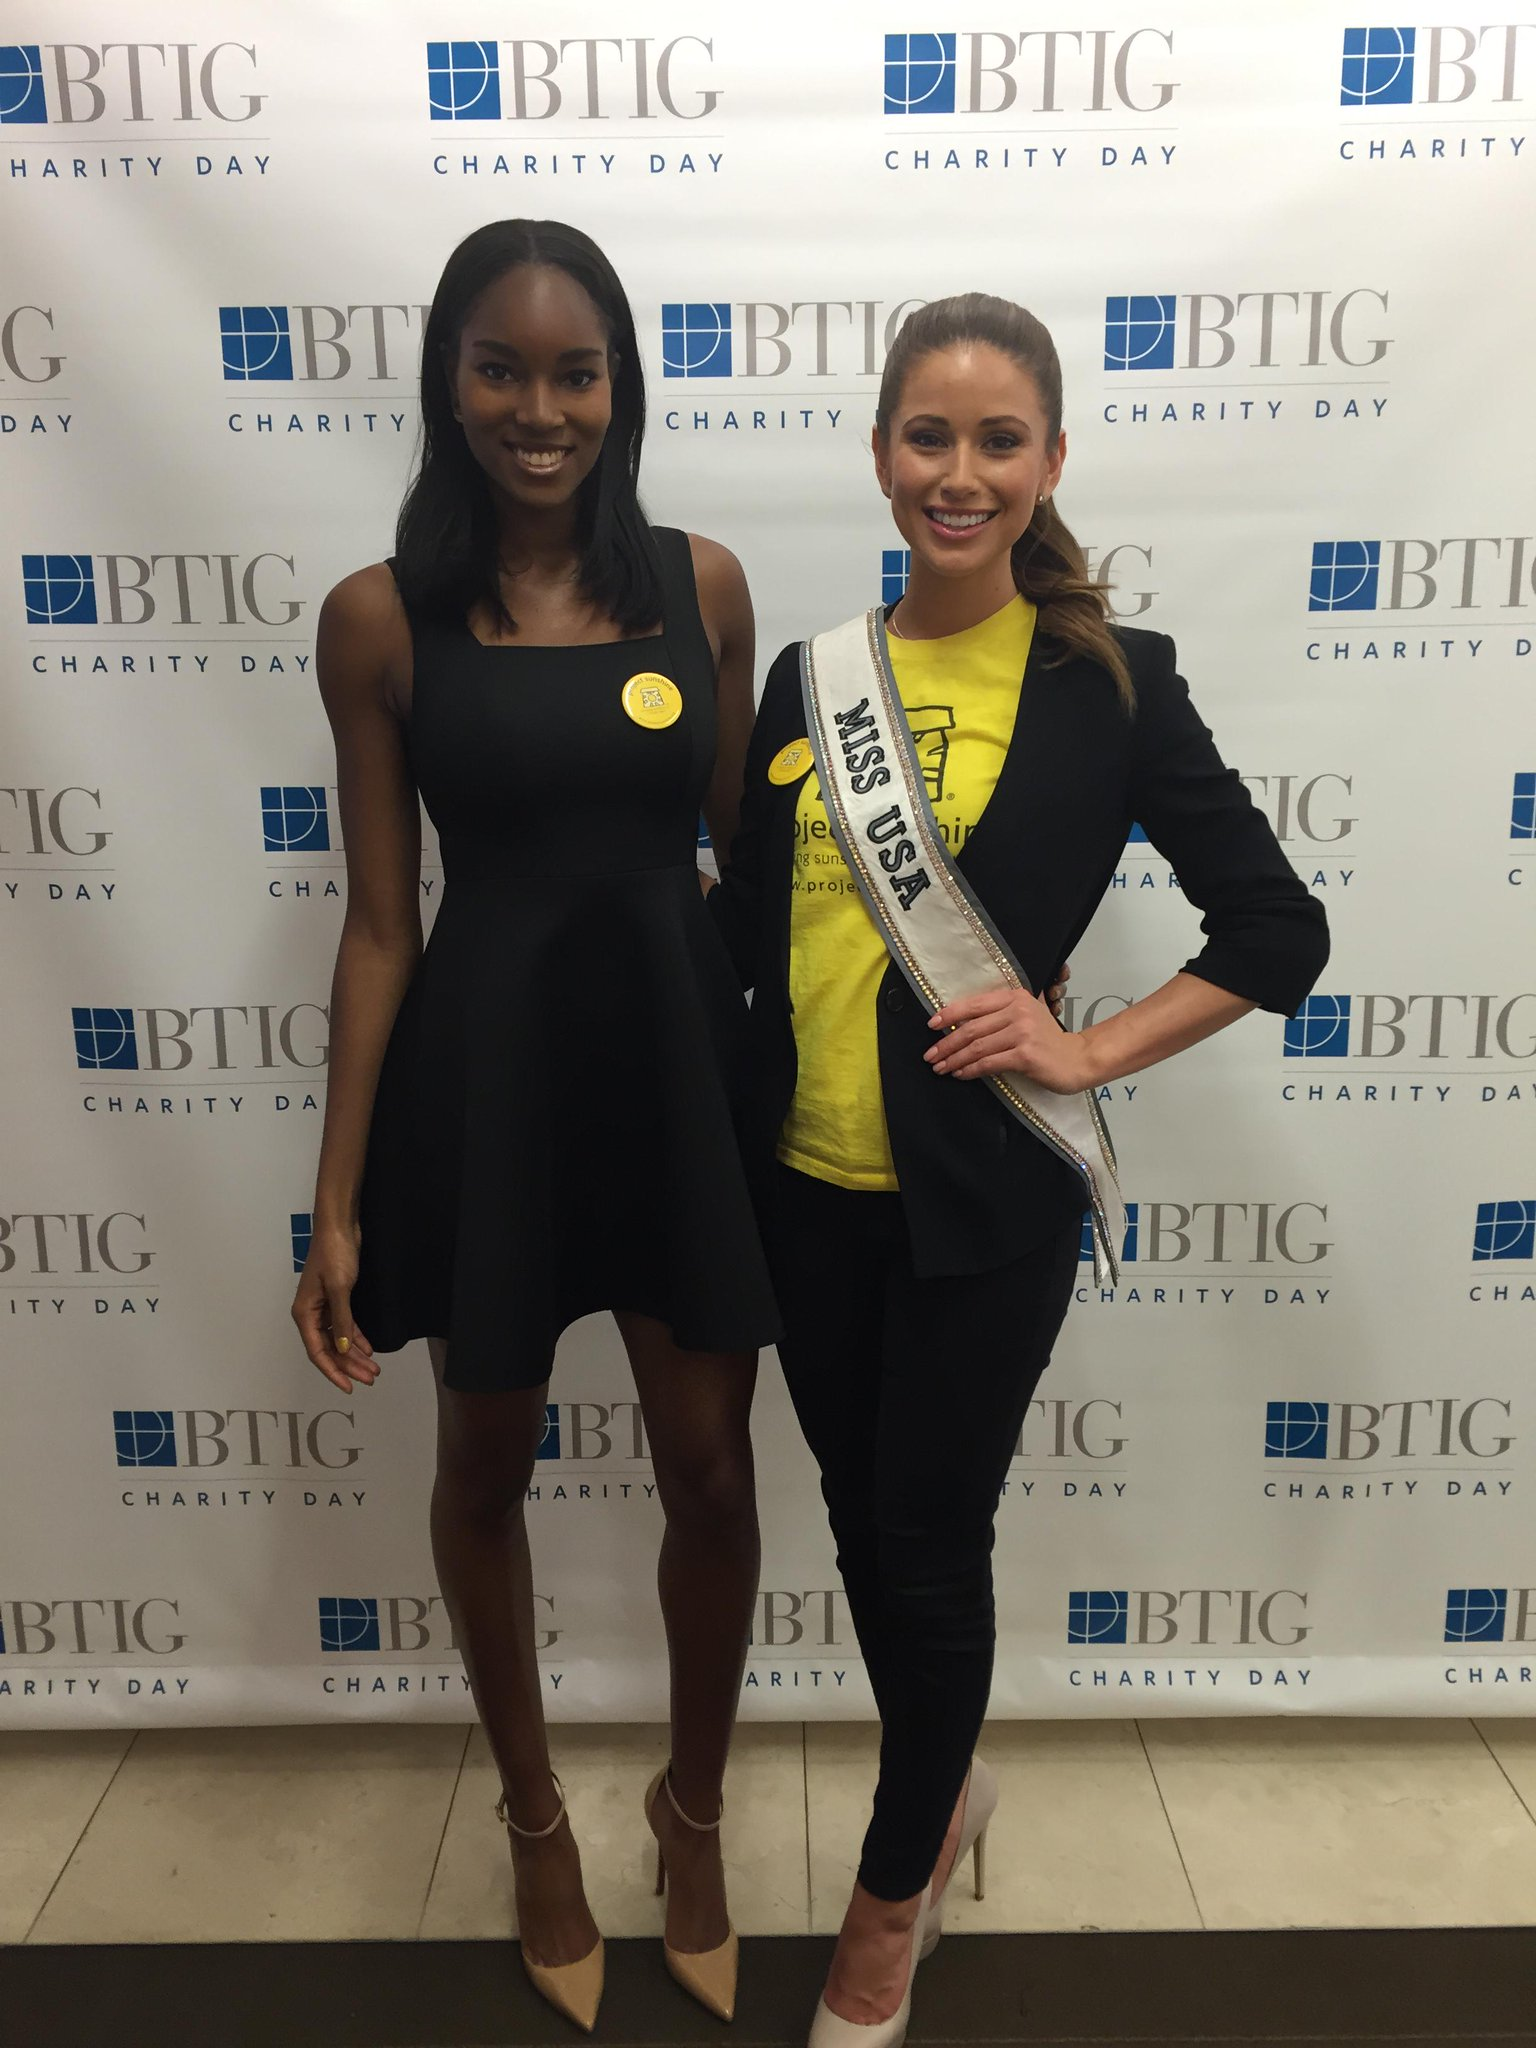 RT @ProjectSunshine: Thank you @DamarisLewis & @MissUSA for representing @ProjectSunshine @BTIGCharityDay today! #PSweek http://t.co/gUQuCf…